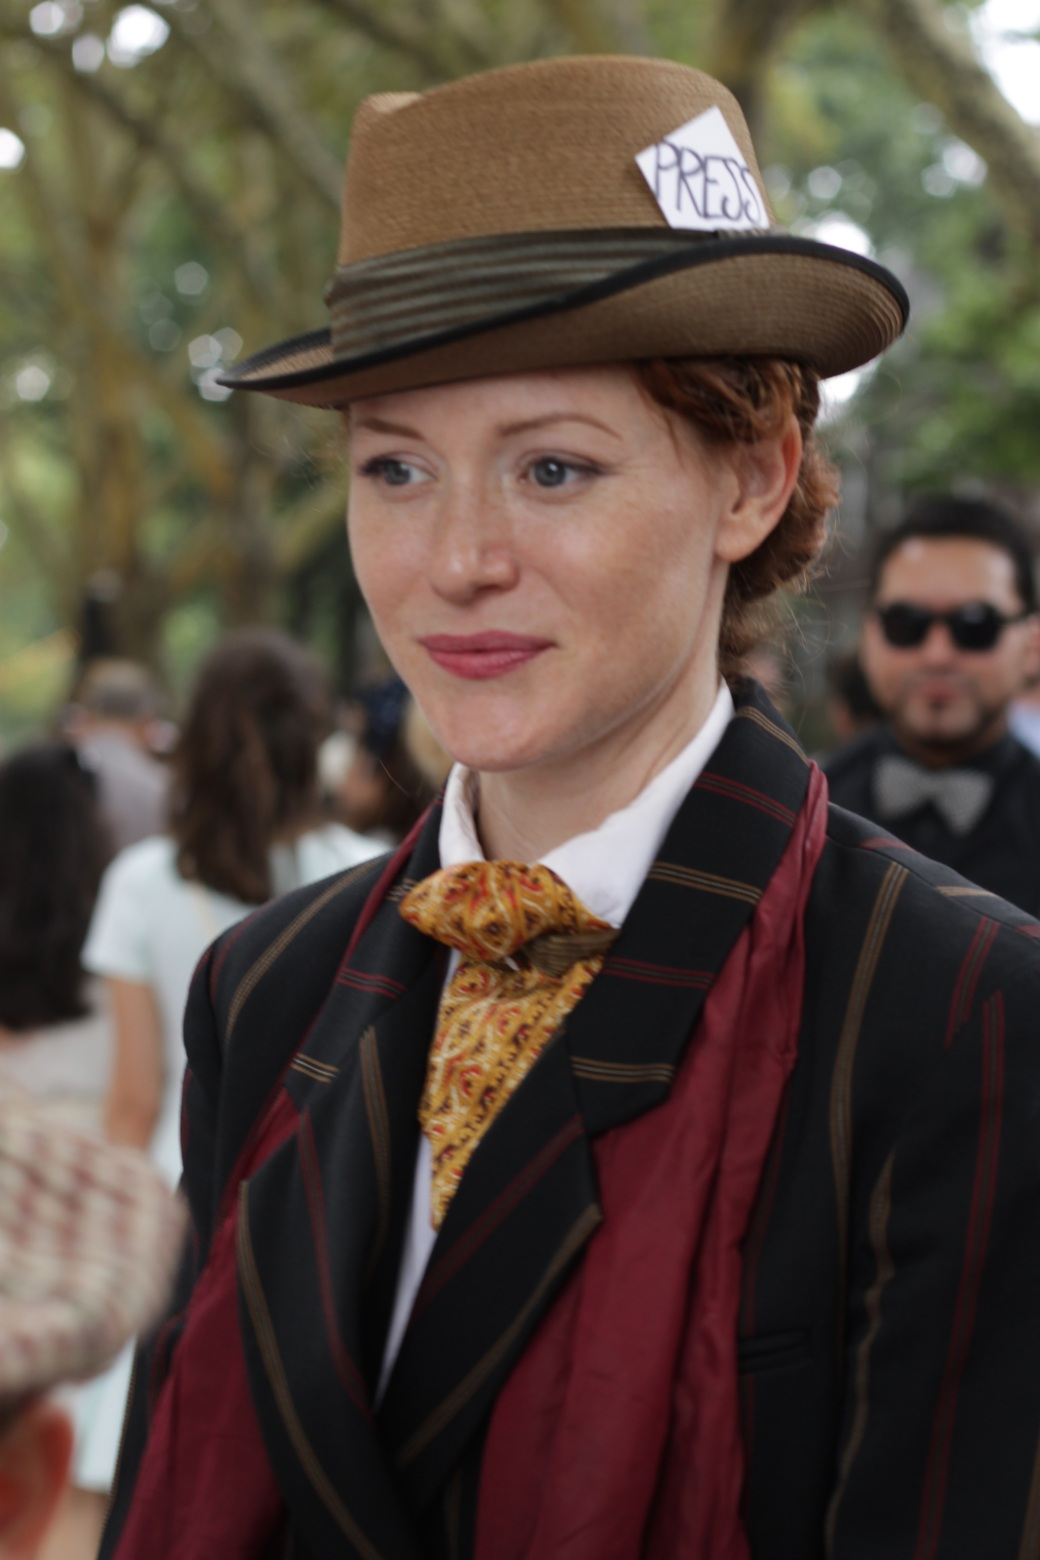 new york city governors island jazz age lawn party august 17 2014 67